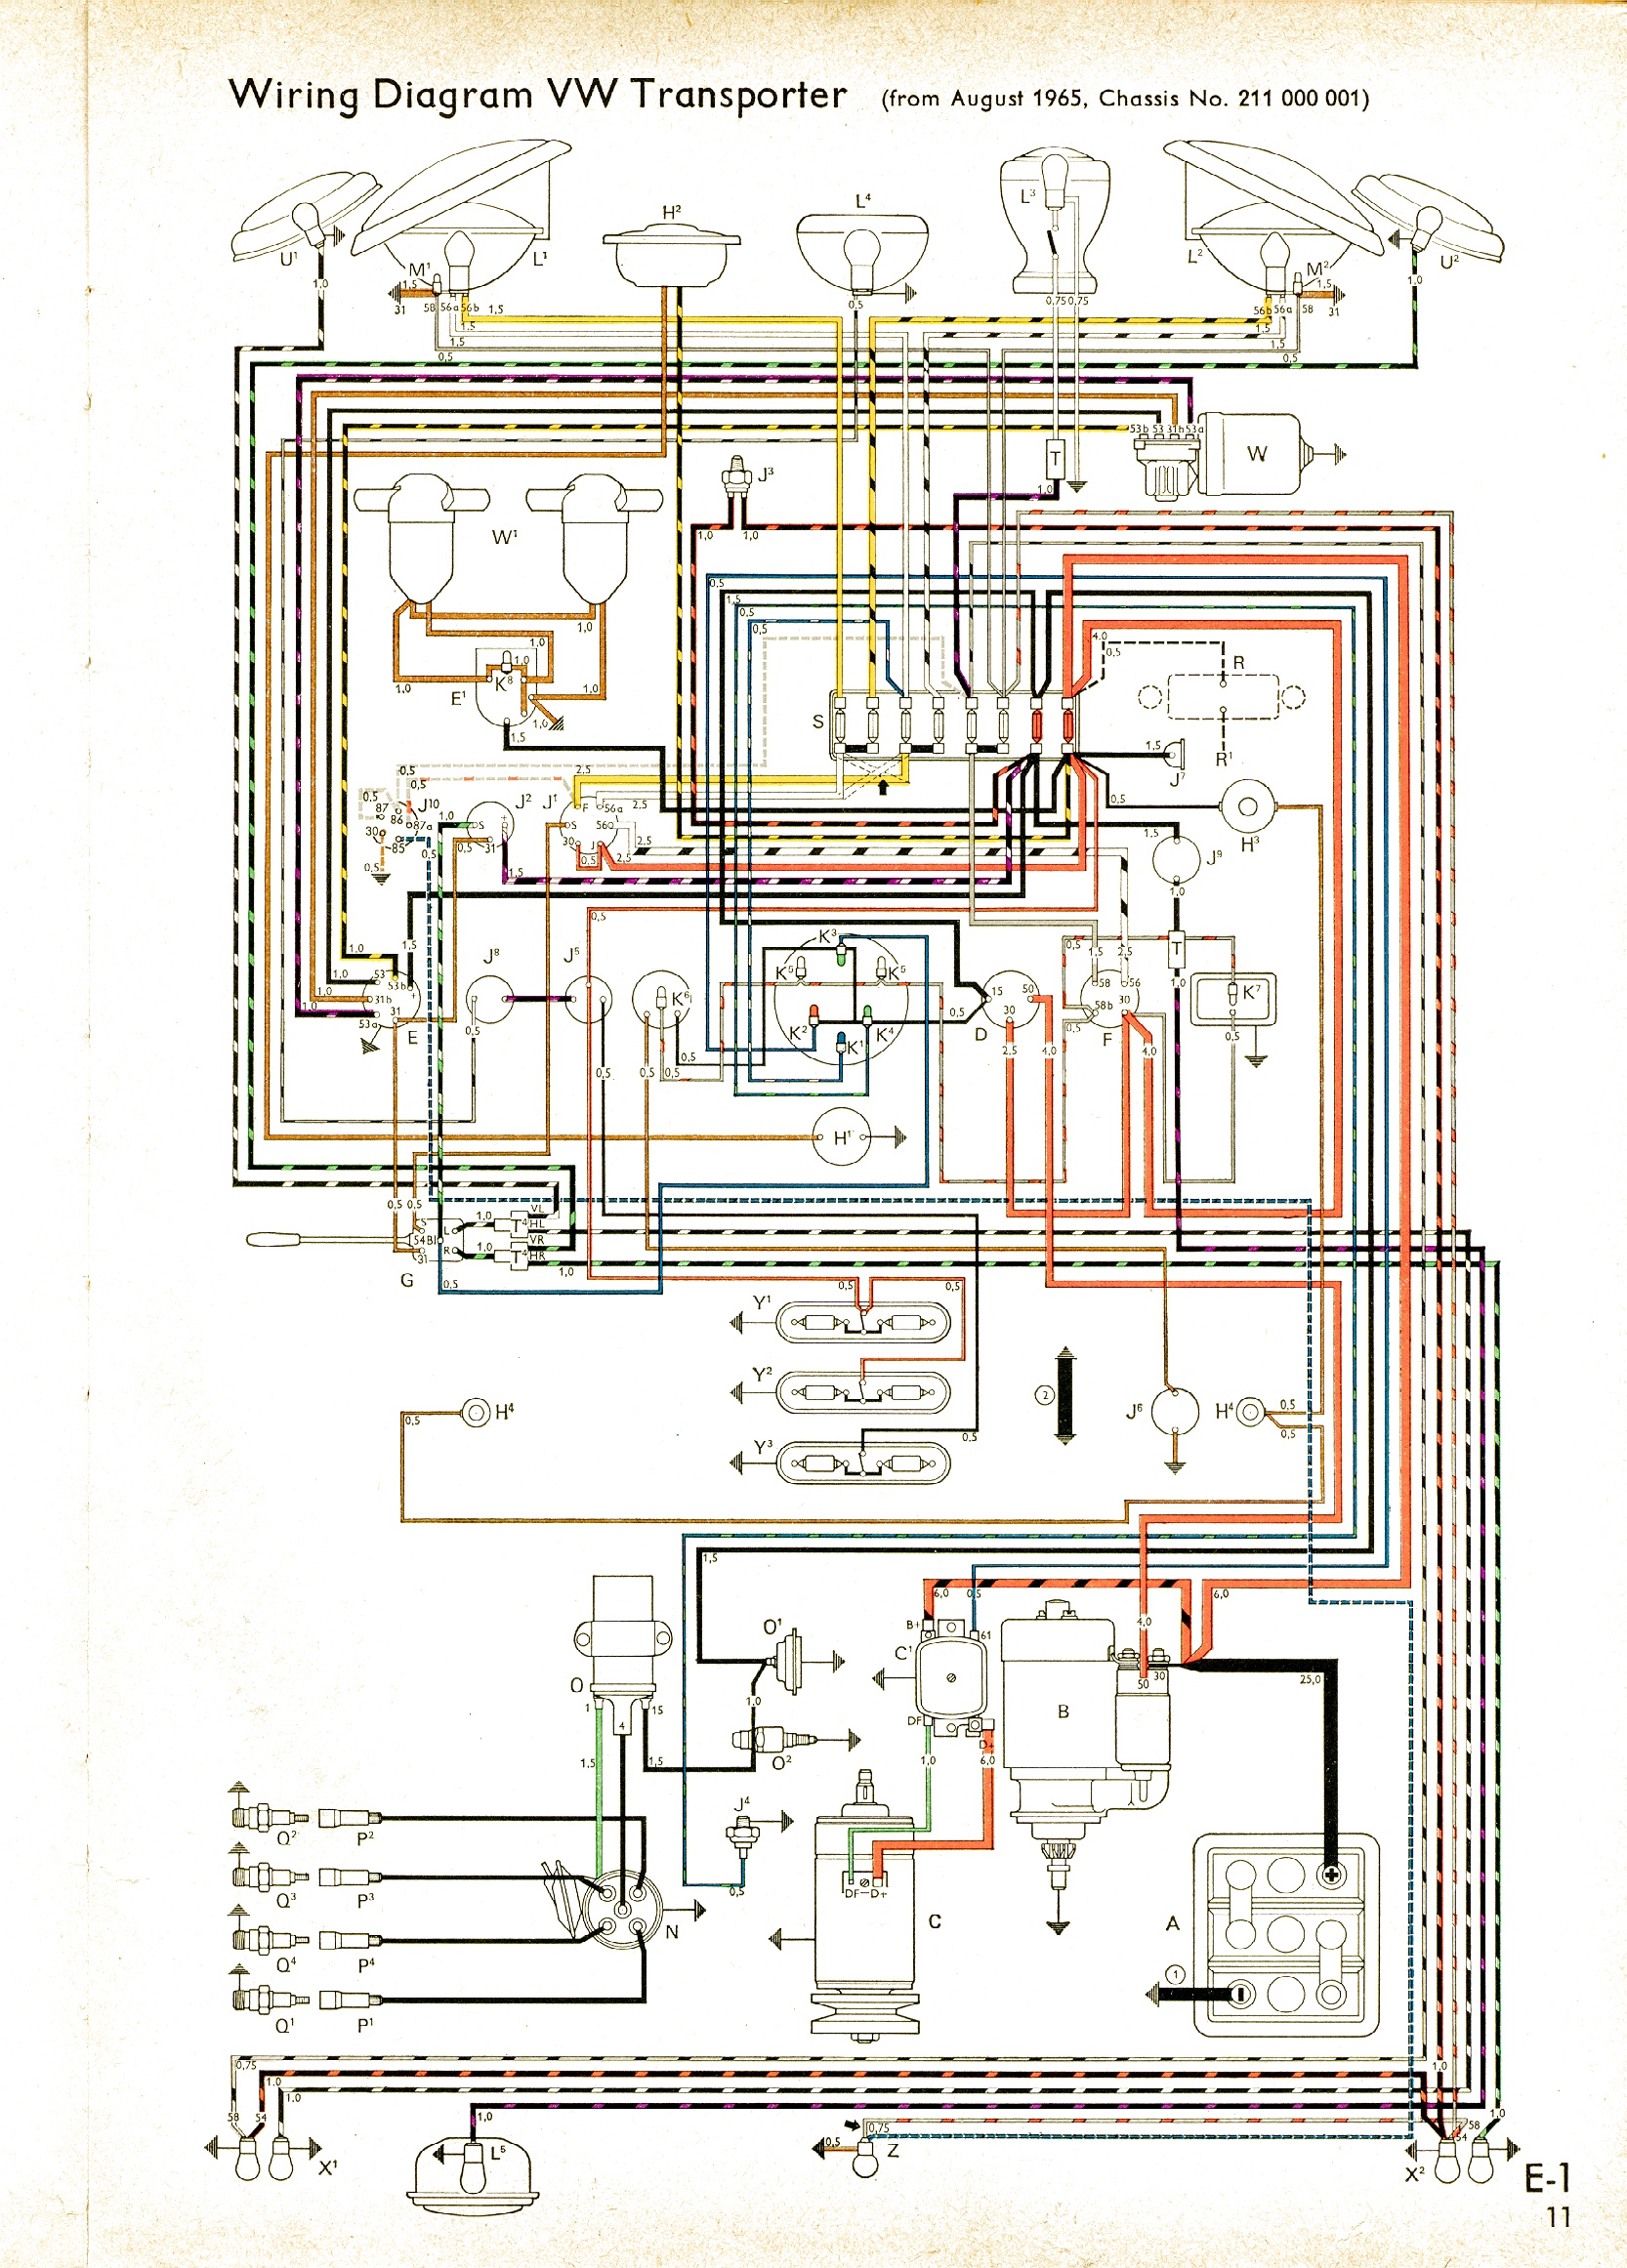 vintagebus com vw bus (and other) wiring diagrams ge dryer wiring diagram com vw bus (and other) wiring diagrams